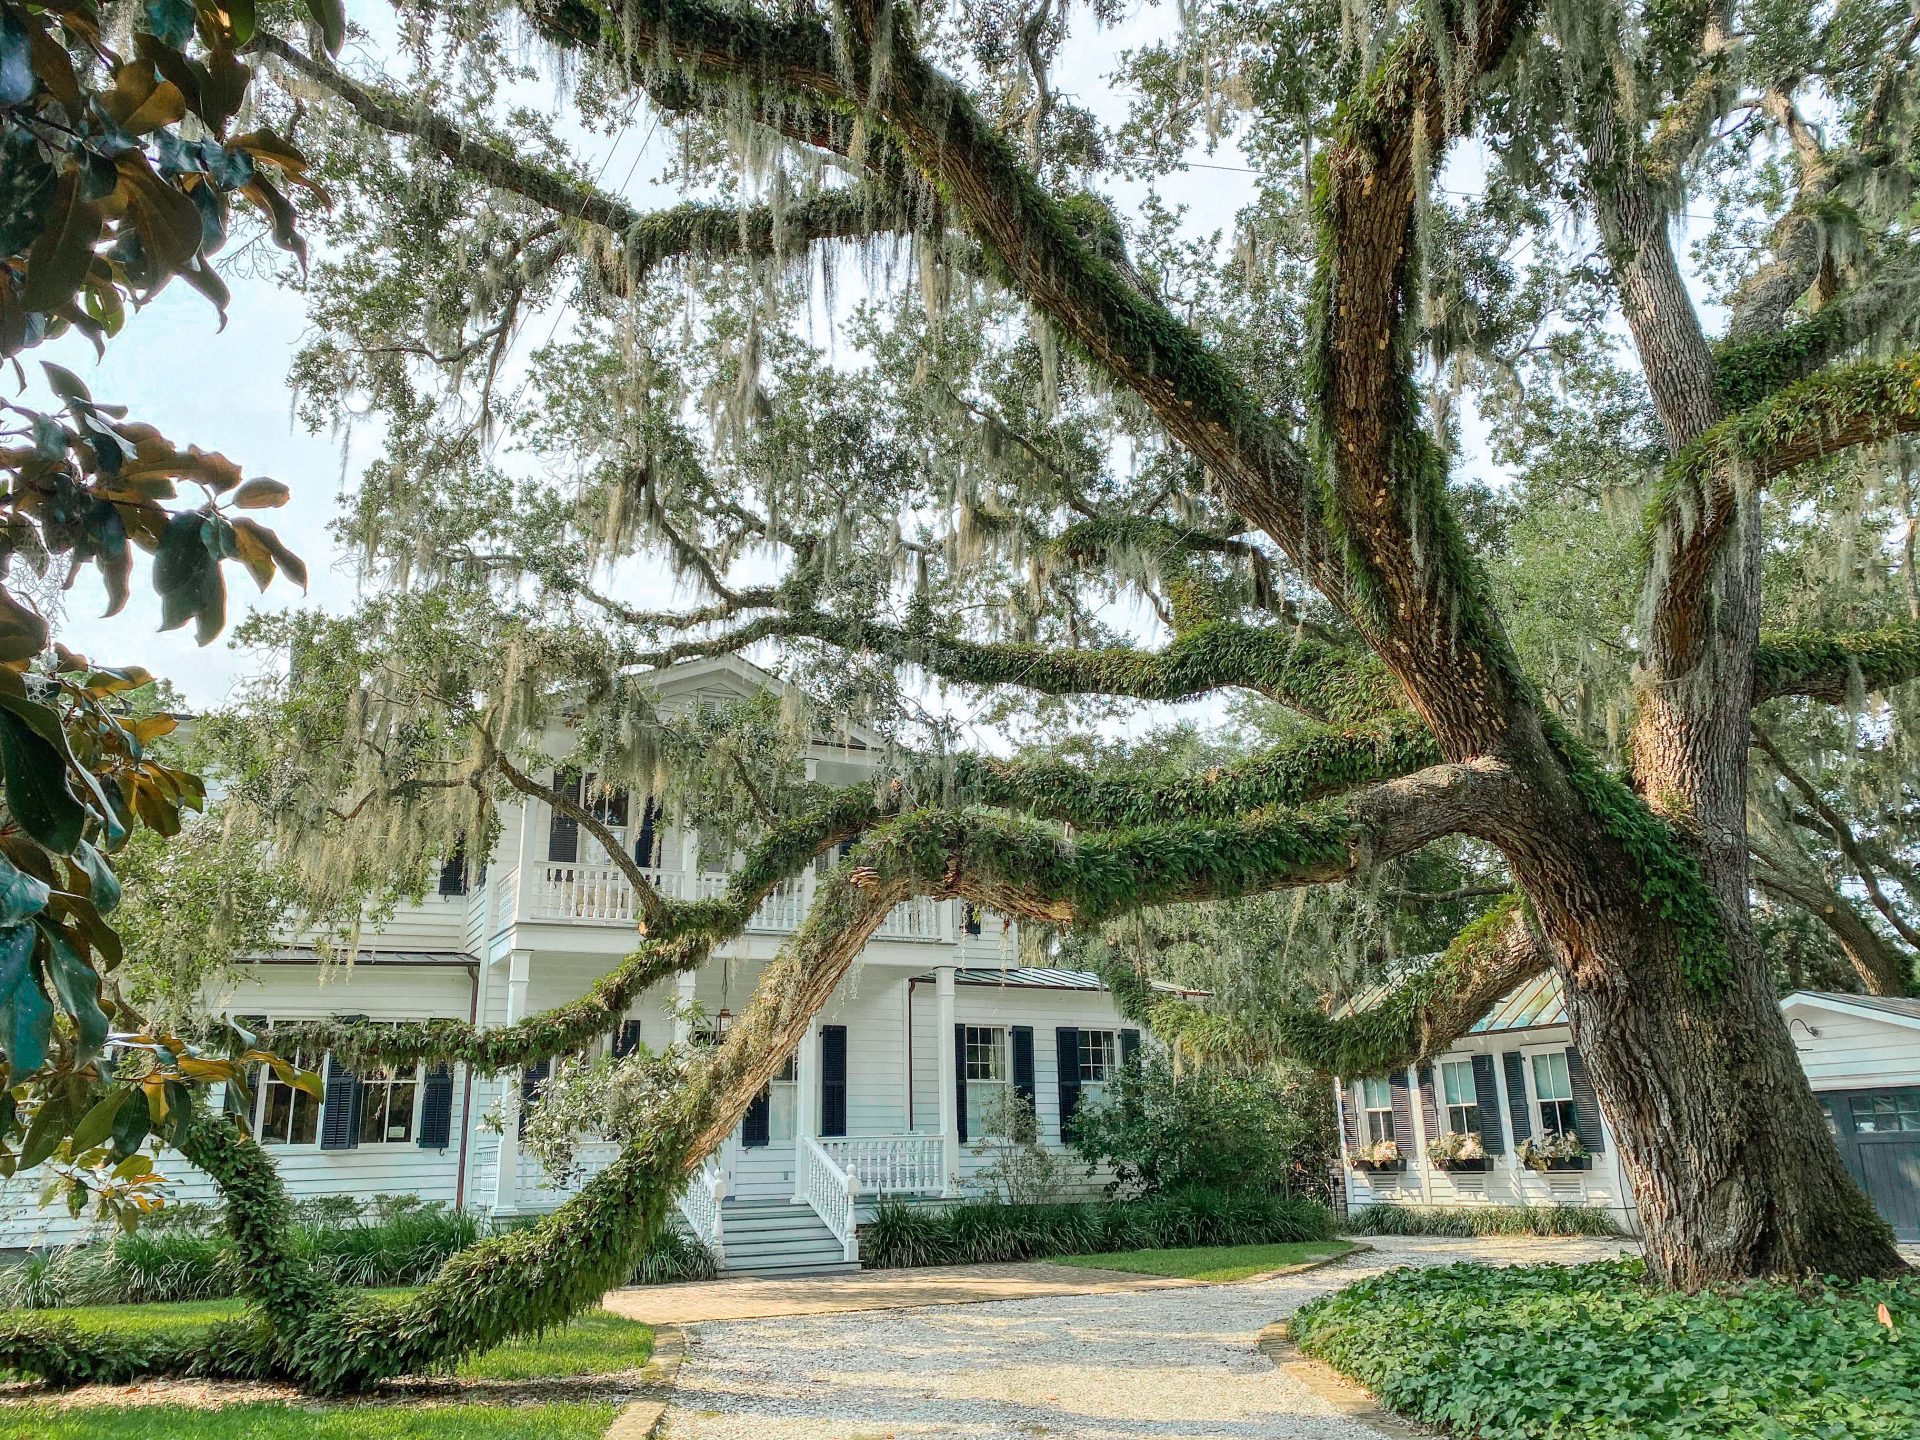 Beaufort travel, Thomas Rhett house, bed and breakfast, low country, travel guide, weekend trip, road trip, marsh, where to eat, where to stay, what to do, southern, Spanish moss, beautiful travel